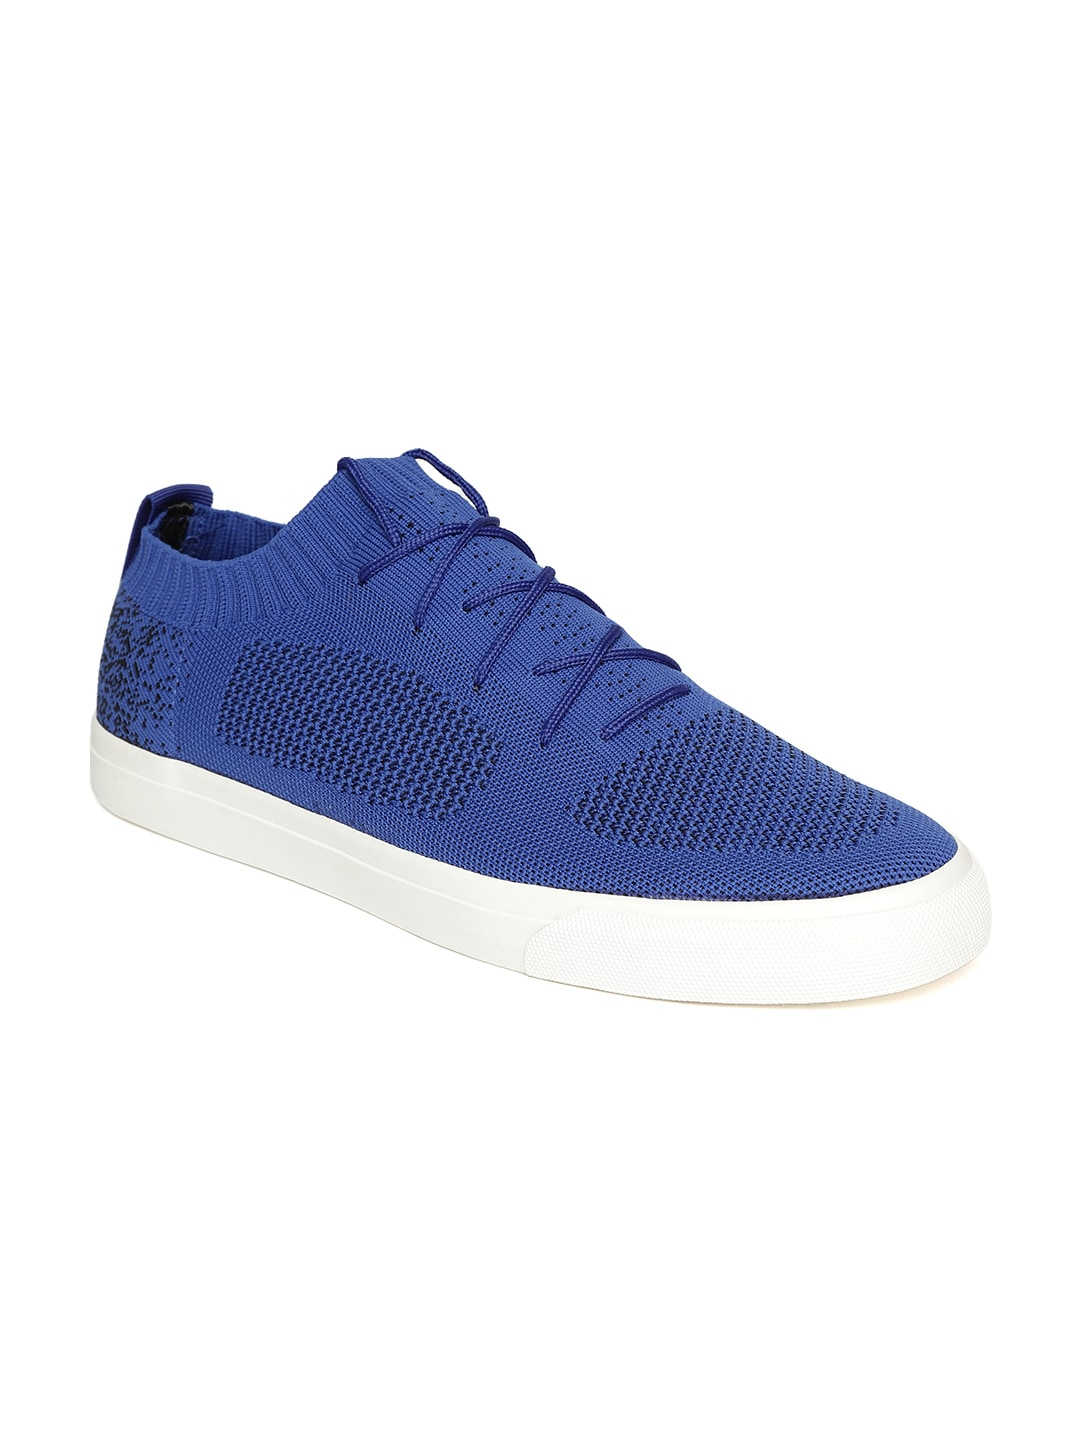 be164af958fe Men s Blue Casual Shoes - Buy Blue Casual Shoes for Men Online in India